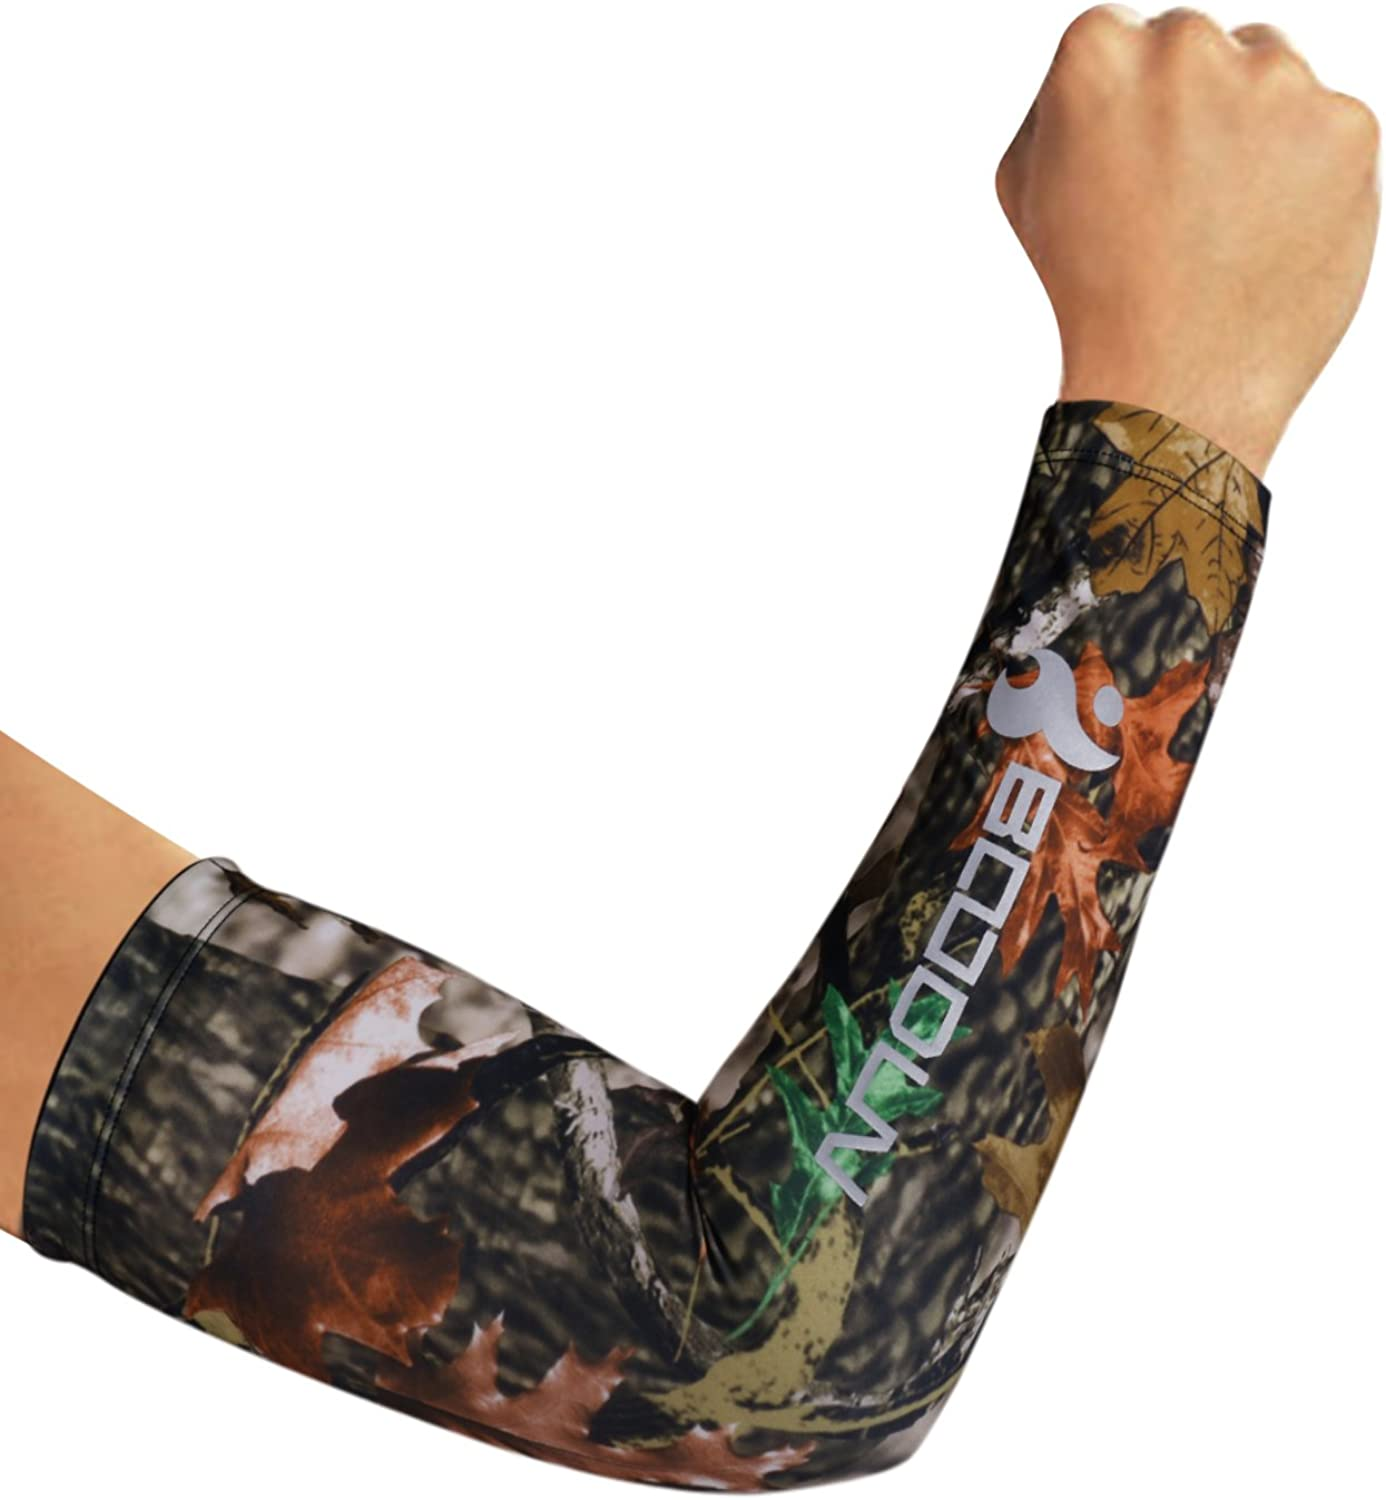 DONWELL Sports Arm Sleeves UV Sun Protection Cooling Arm Sleeve Cover Gloves 1 Pair